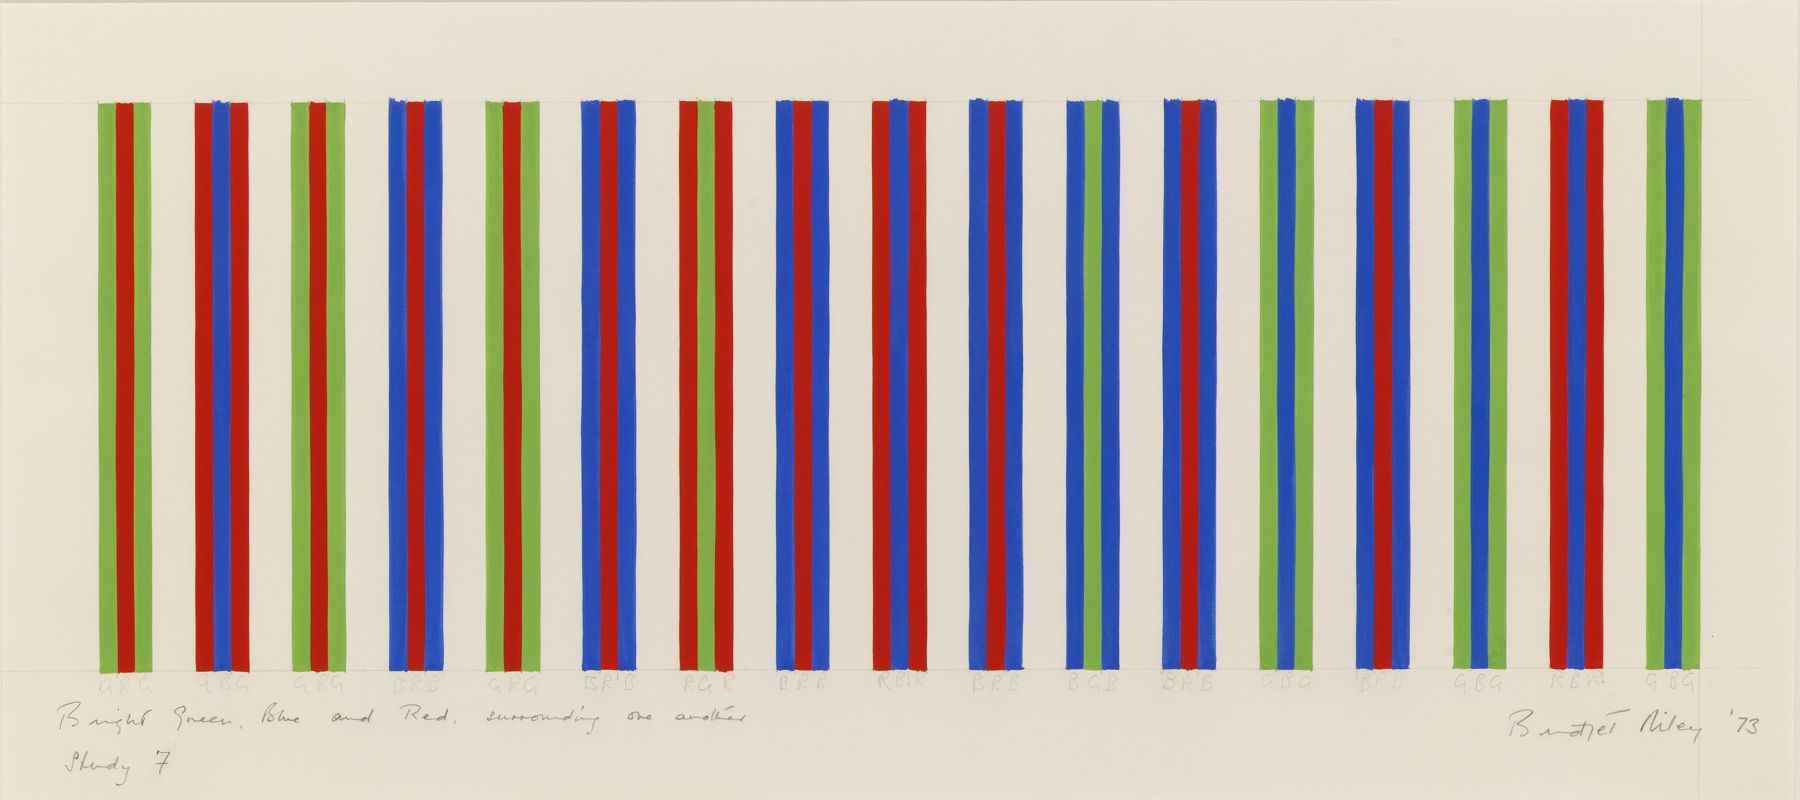 Bridget Riley, Bright Green, Blue and Red, Surrounding One Another, Study 7, 1973